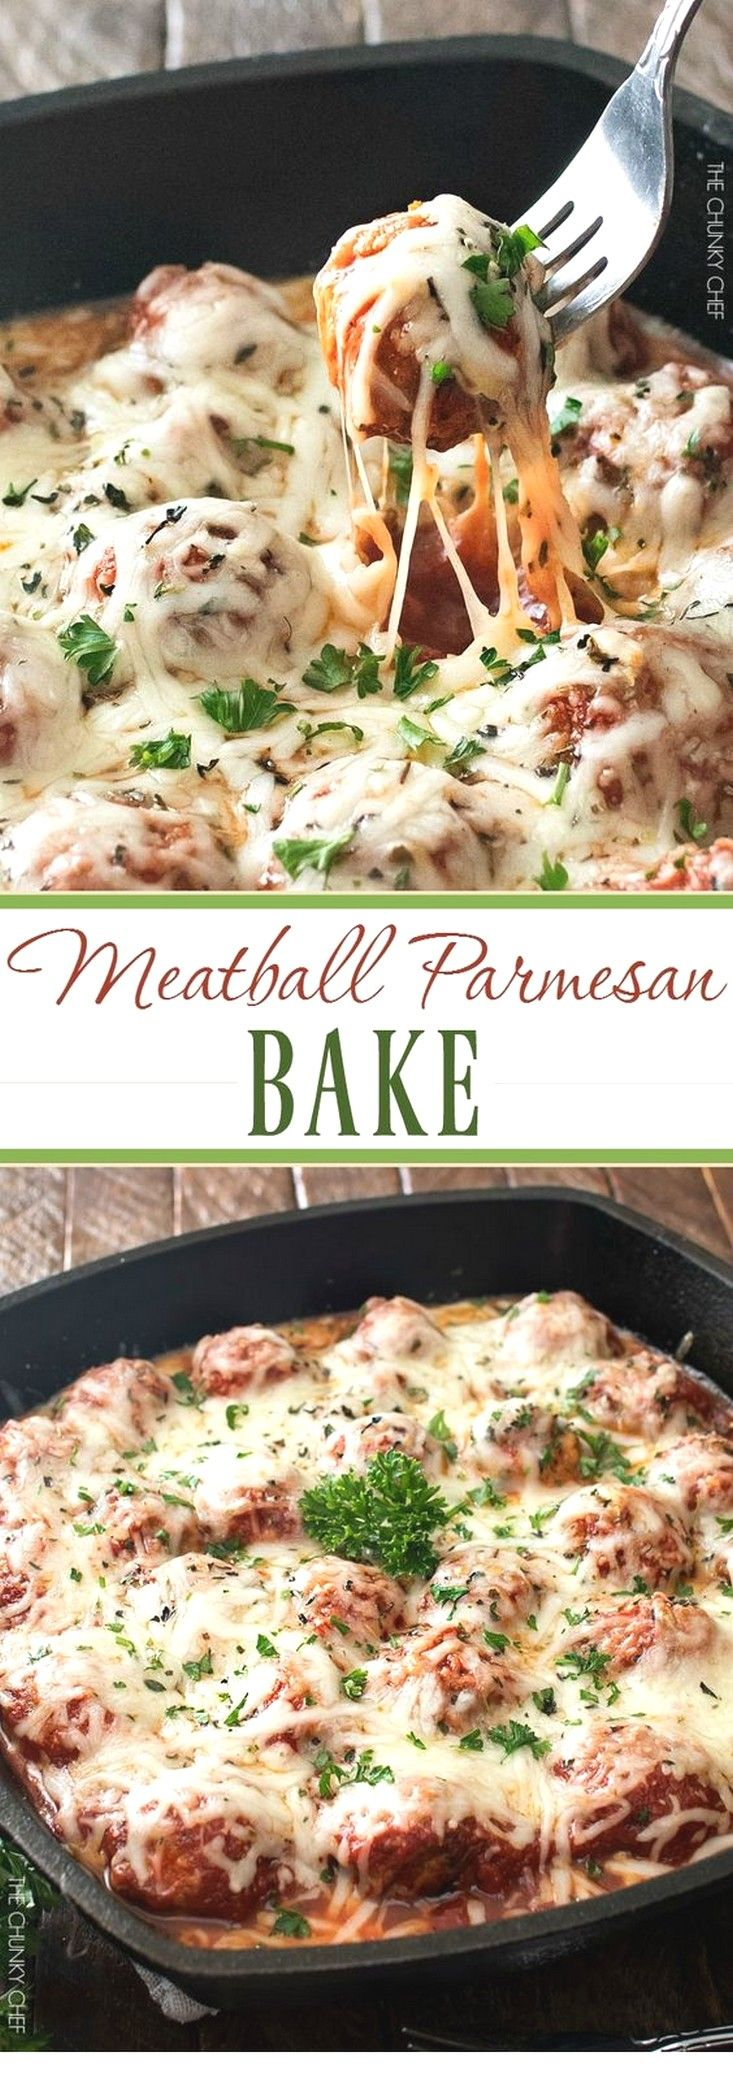 Photo of Meatball Parmesan Bake | Easy Beef Recipes Ideas